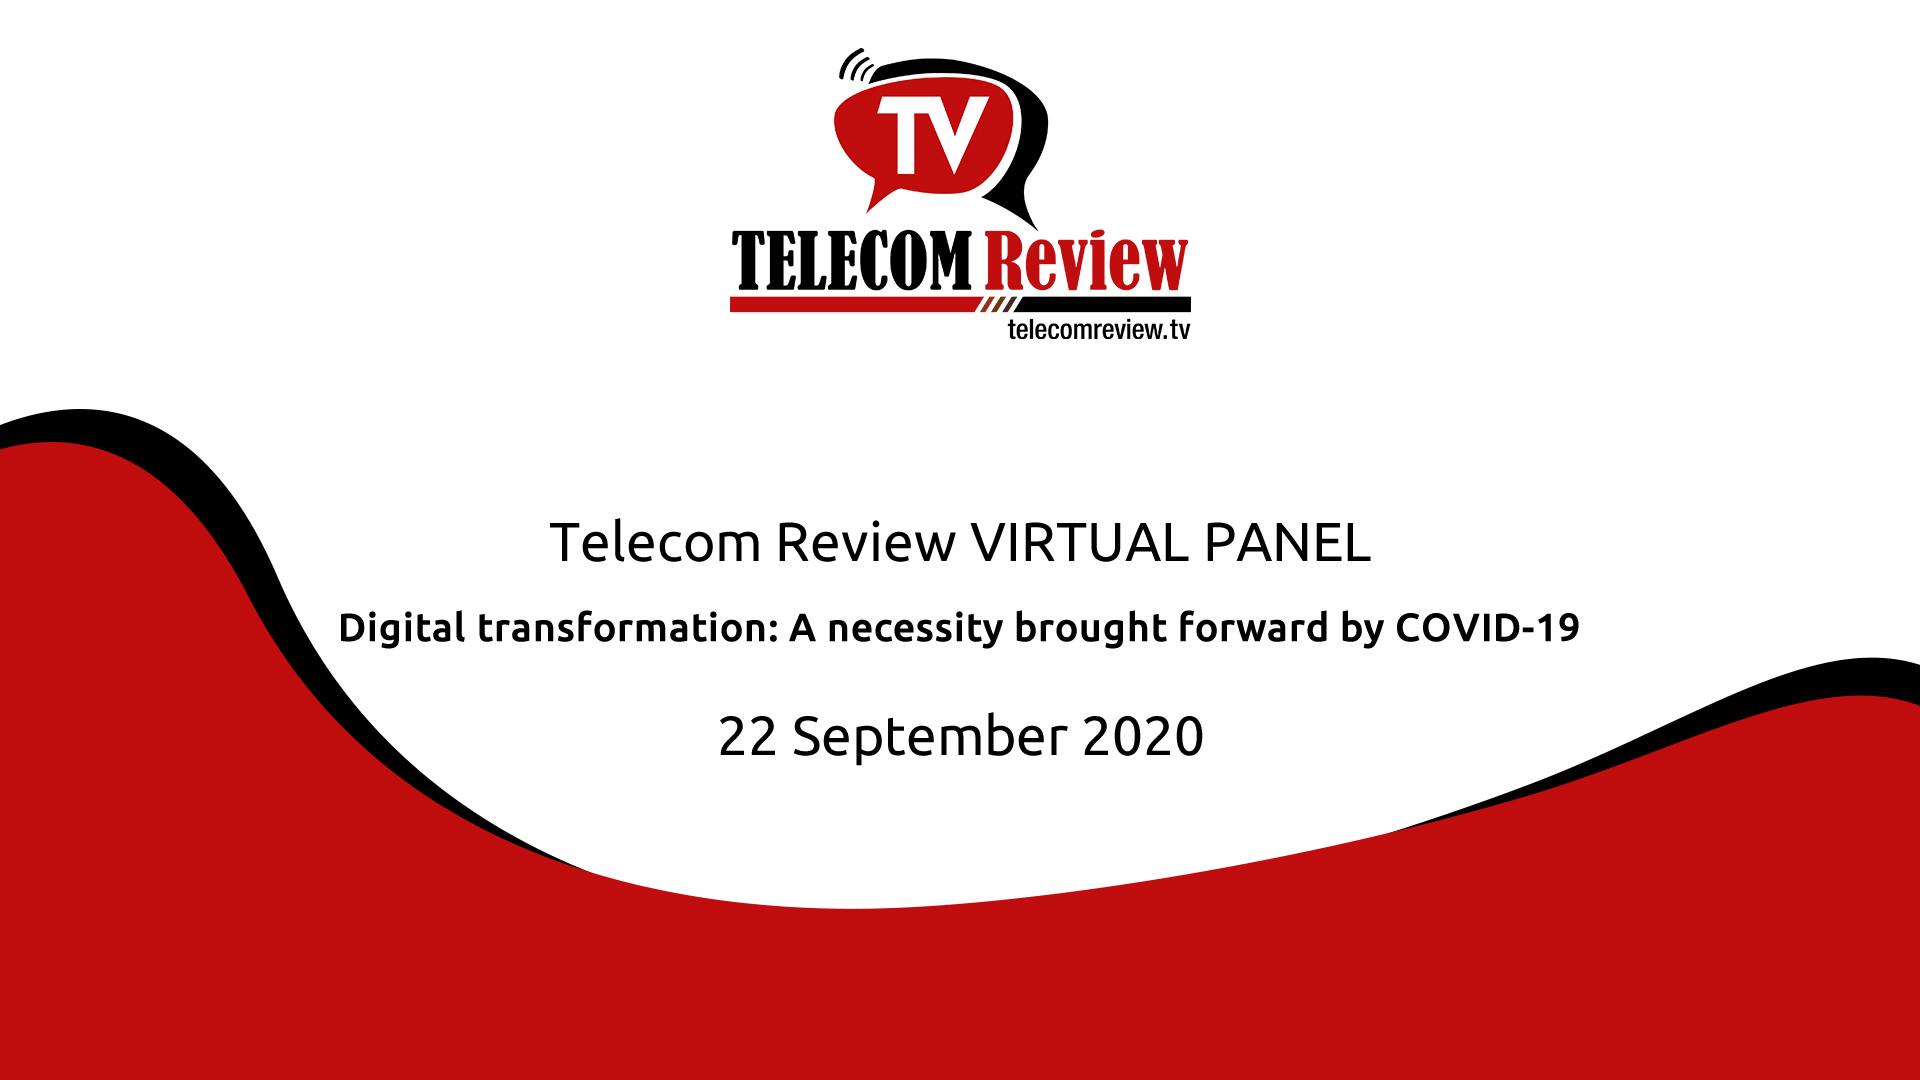 Highlights: Telecom Review virtual panel on digital transformation amid pandemic